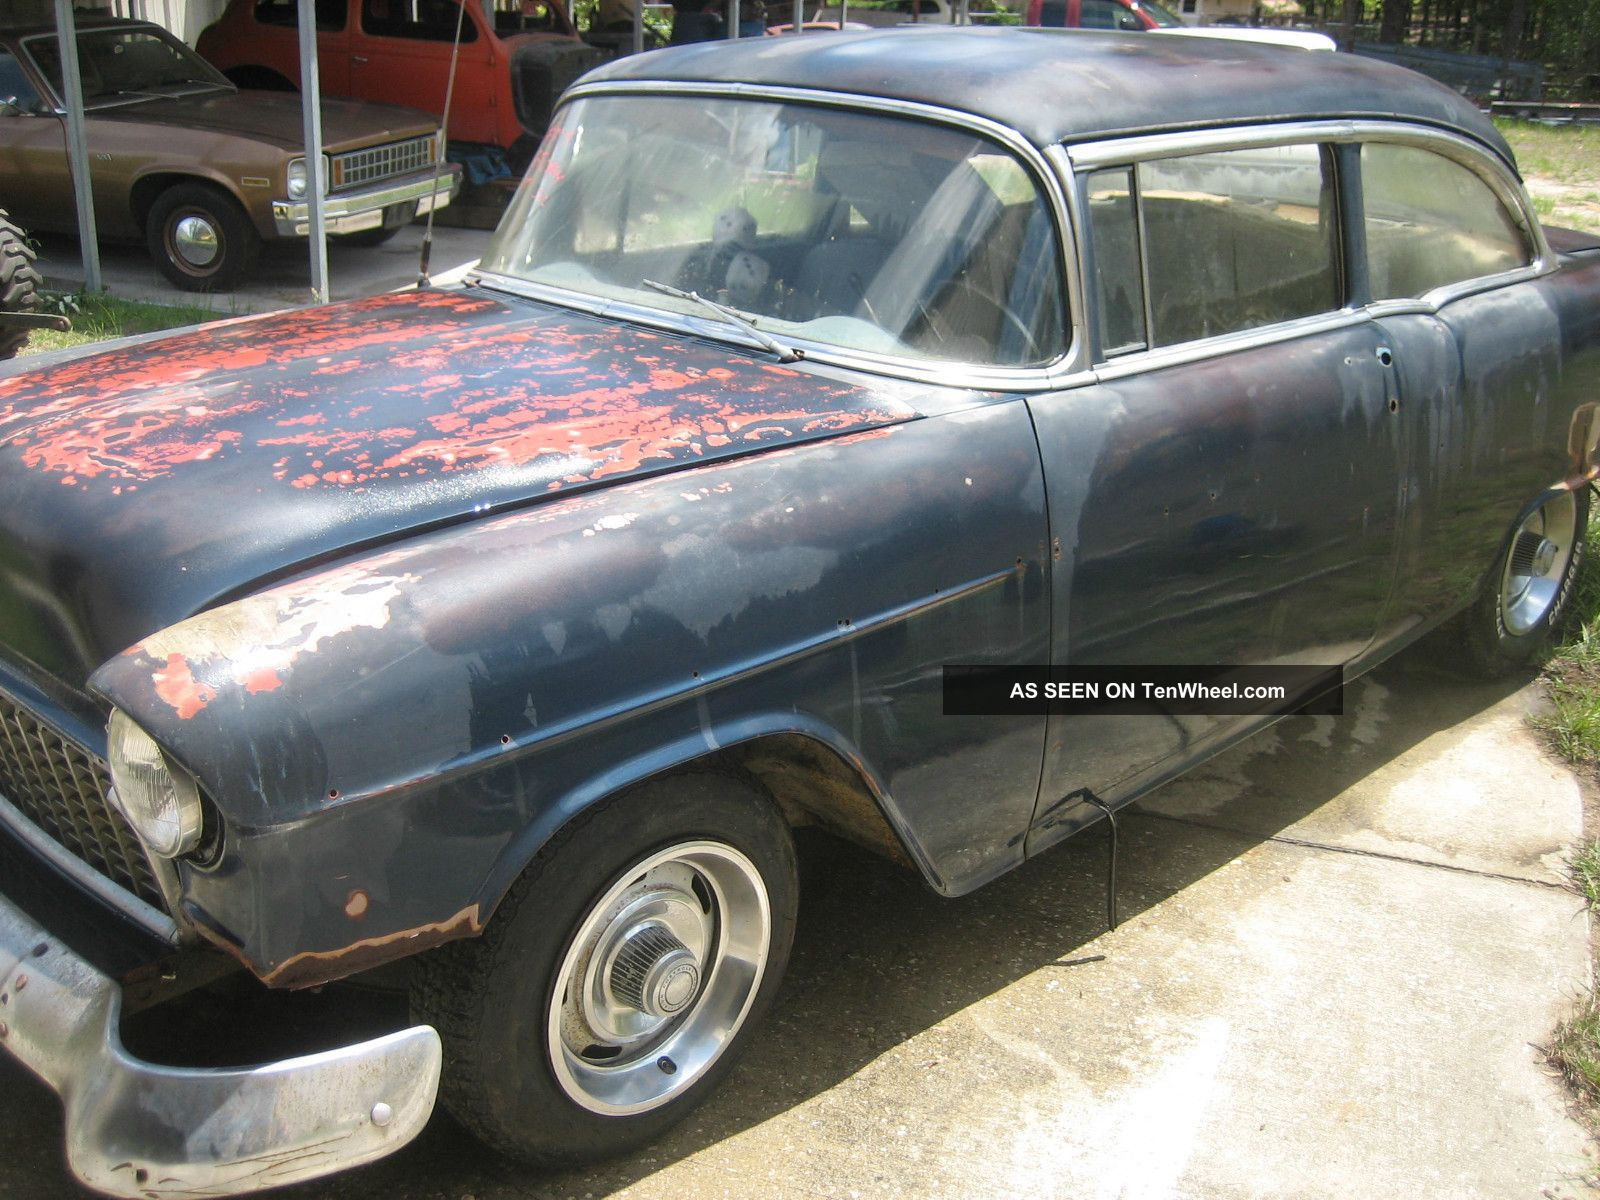 1955 Chevy Bel Air - Great Project Car